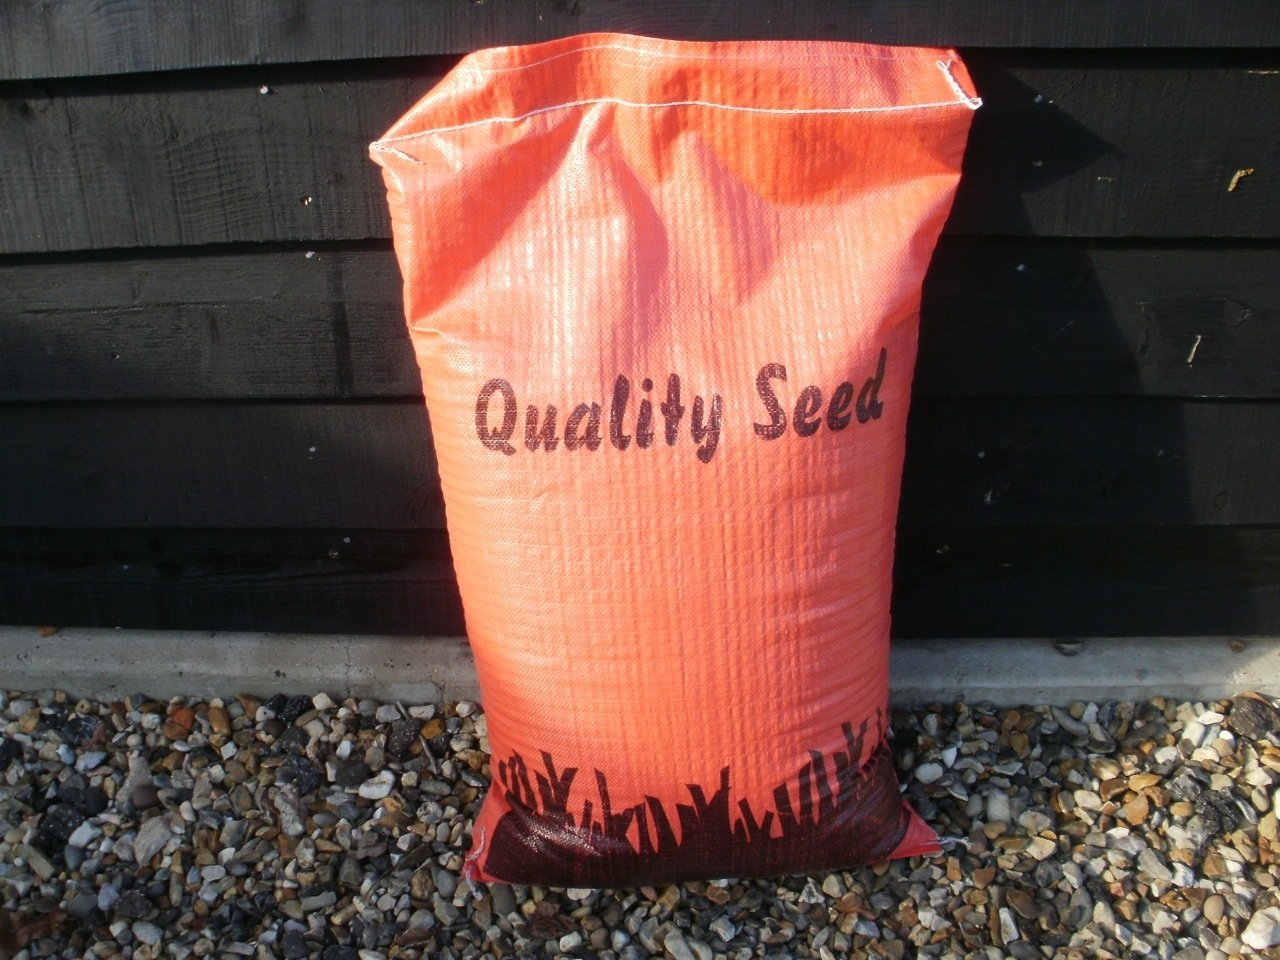 140sq m ideal for back lawns grass seed 5kg Sack of Multi-purpose lawn seed